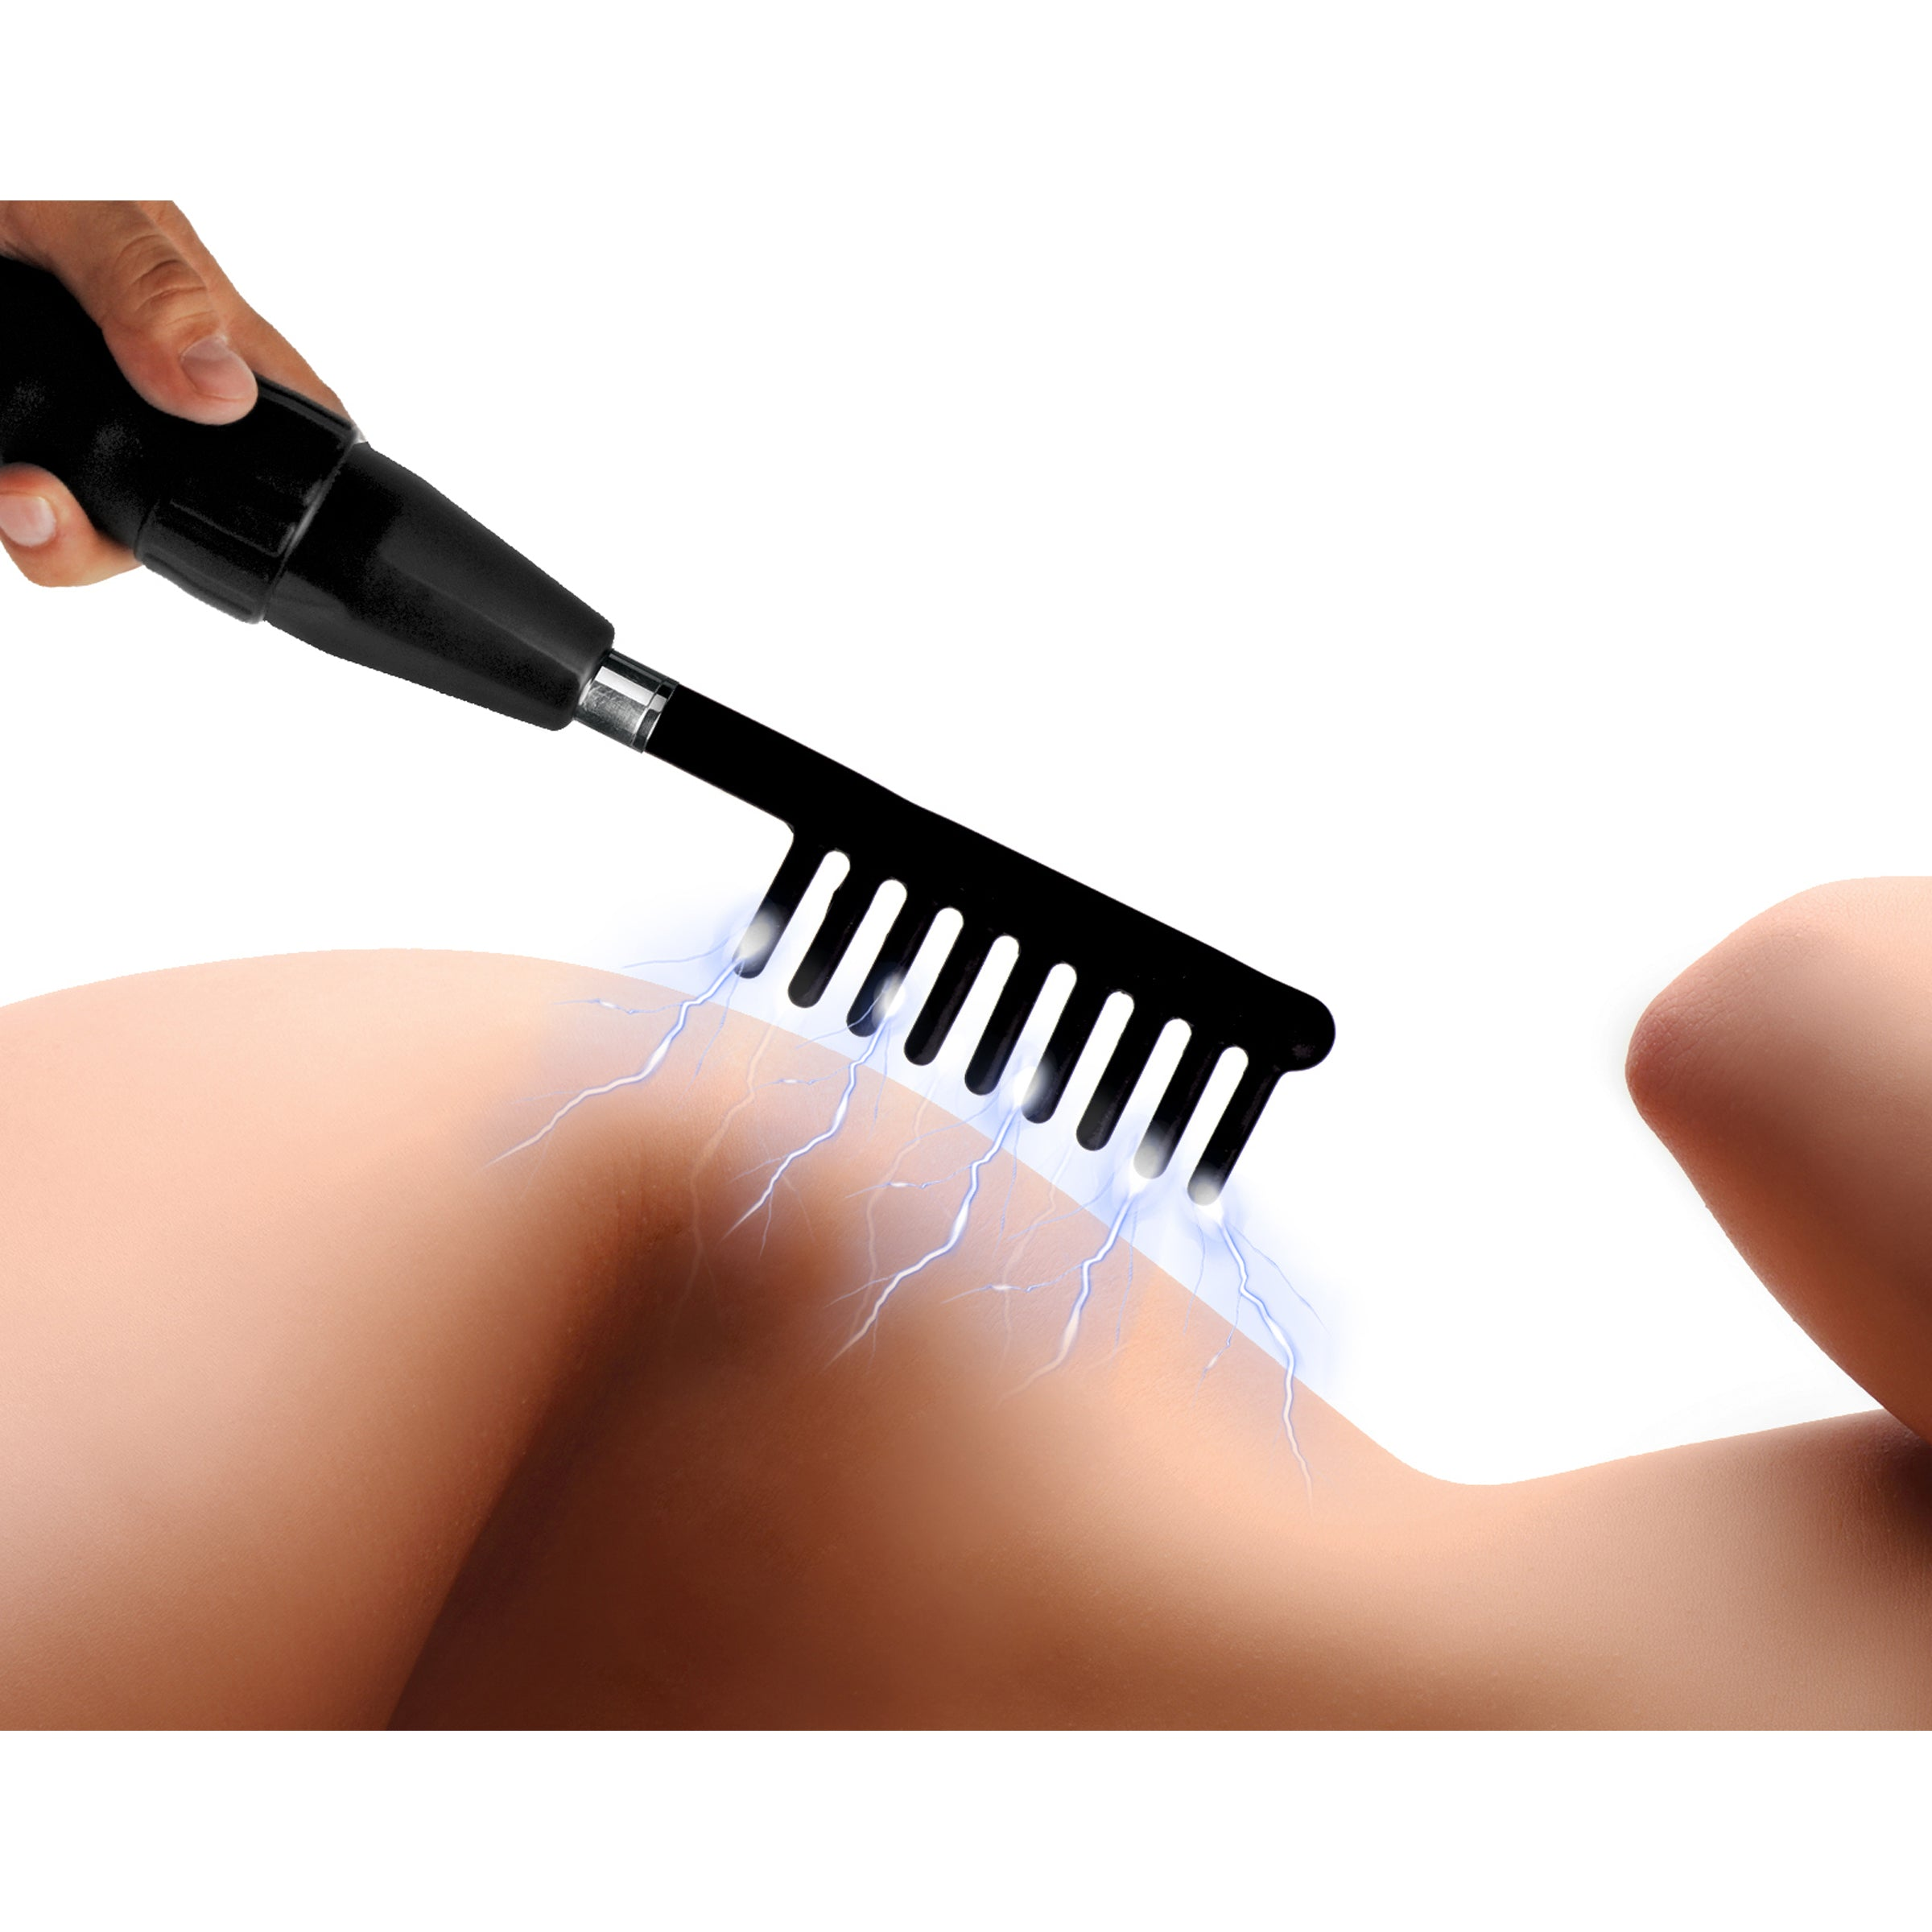 Extreme Twilight Comb Silicone Estim Attachment